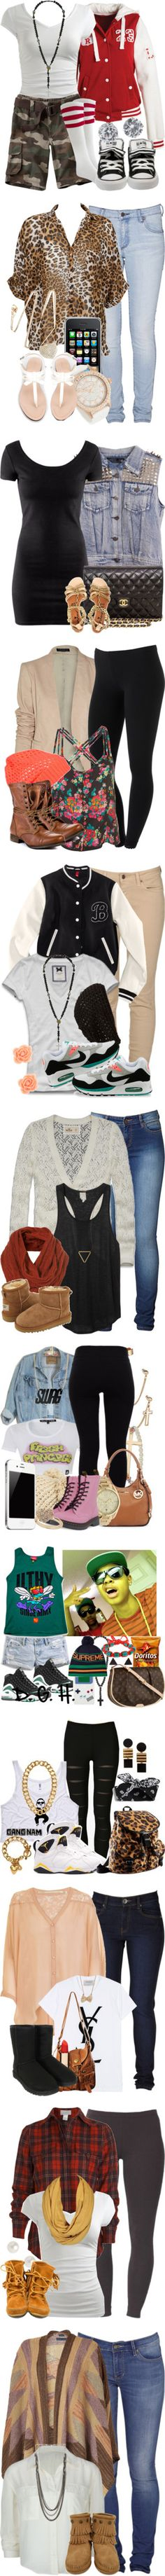 """Swagg Part 8"" by littlemissdeaja ❤ liked on Polyvore"